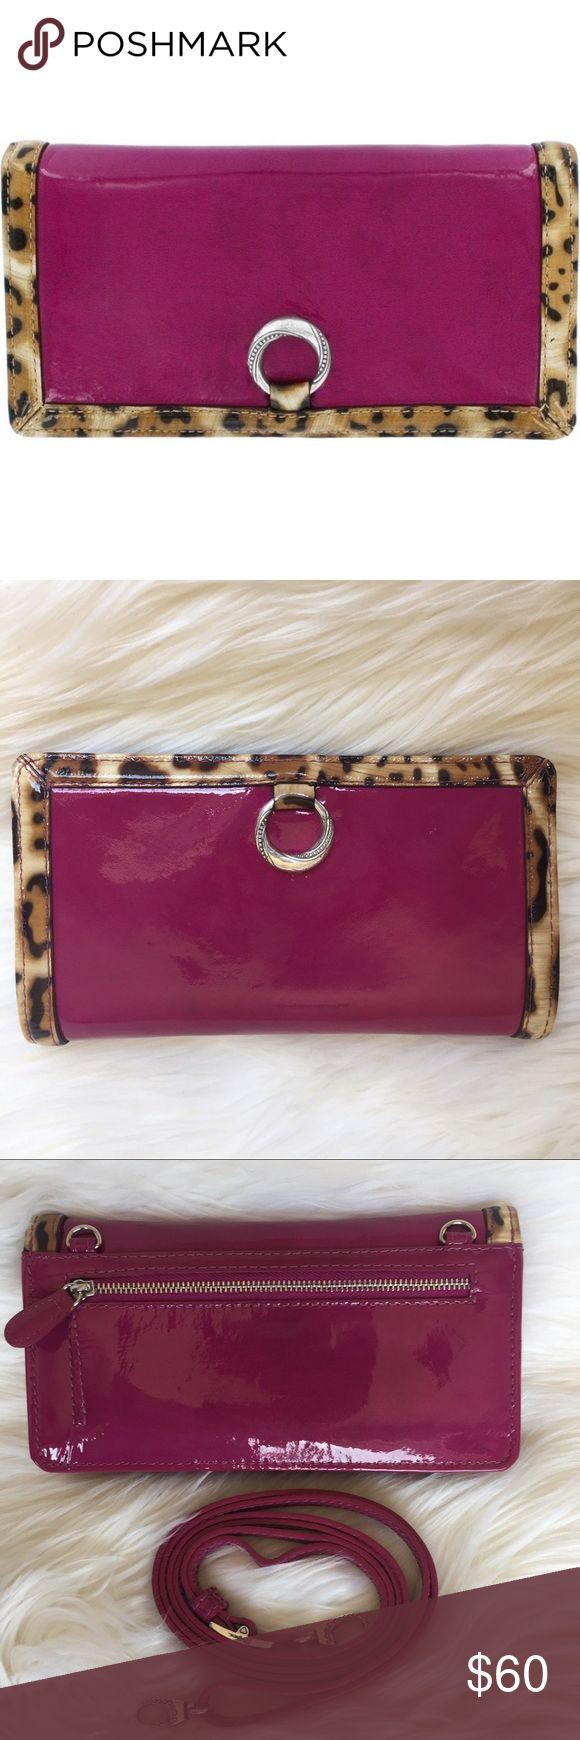 """Brighton Patent Leather Azalea Austyn Wallet The perfect hybrid of mild and wild- this wallet combines ladylike shine with leopard print for an elegant yet edgy effect. W: 7.5"""" x H: 4"""" x D: 1"""", credit card slots: 16, interior pockets: 2, strap: 14"""" x 28.5 detachable, exterior: leather, exterior pockets: 1, closure: flap w/ magnetic snap, features ID window. This wallet was purchased at a Brighton store and used just a few times. It is in as new condition. 🎁 FREE ($42 retail) lip gloss case…"""